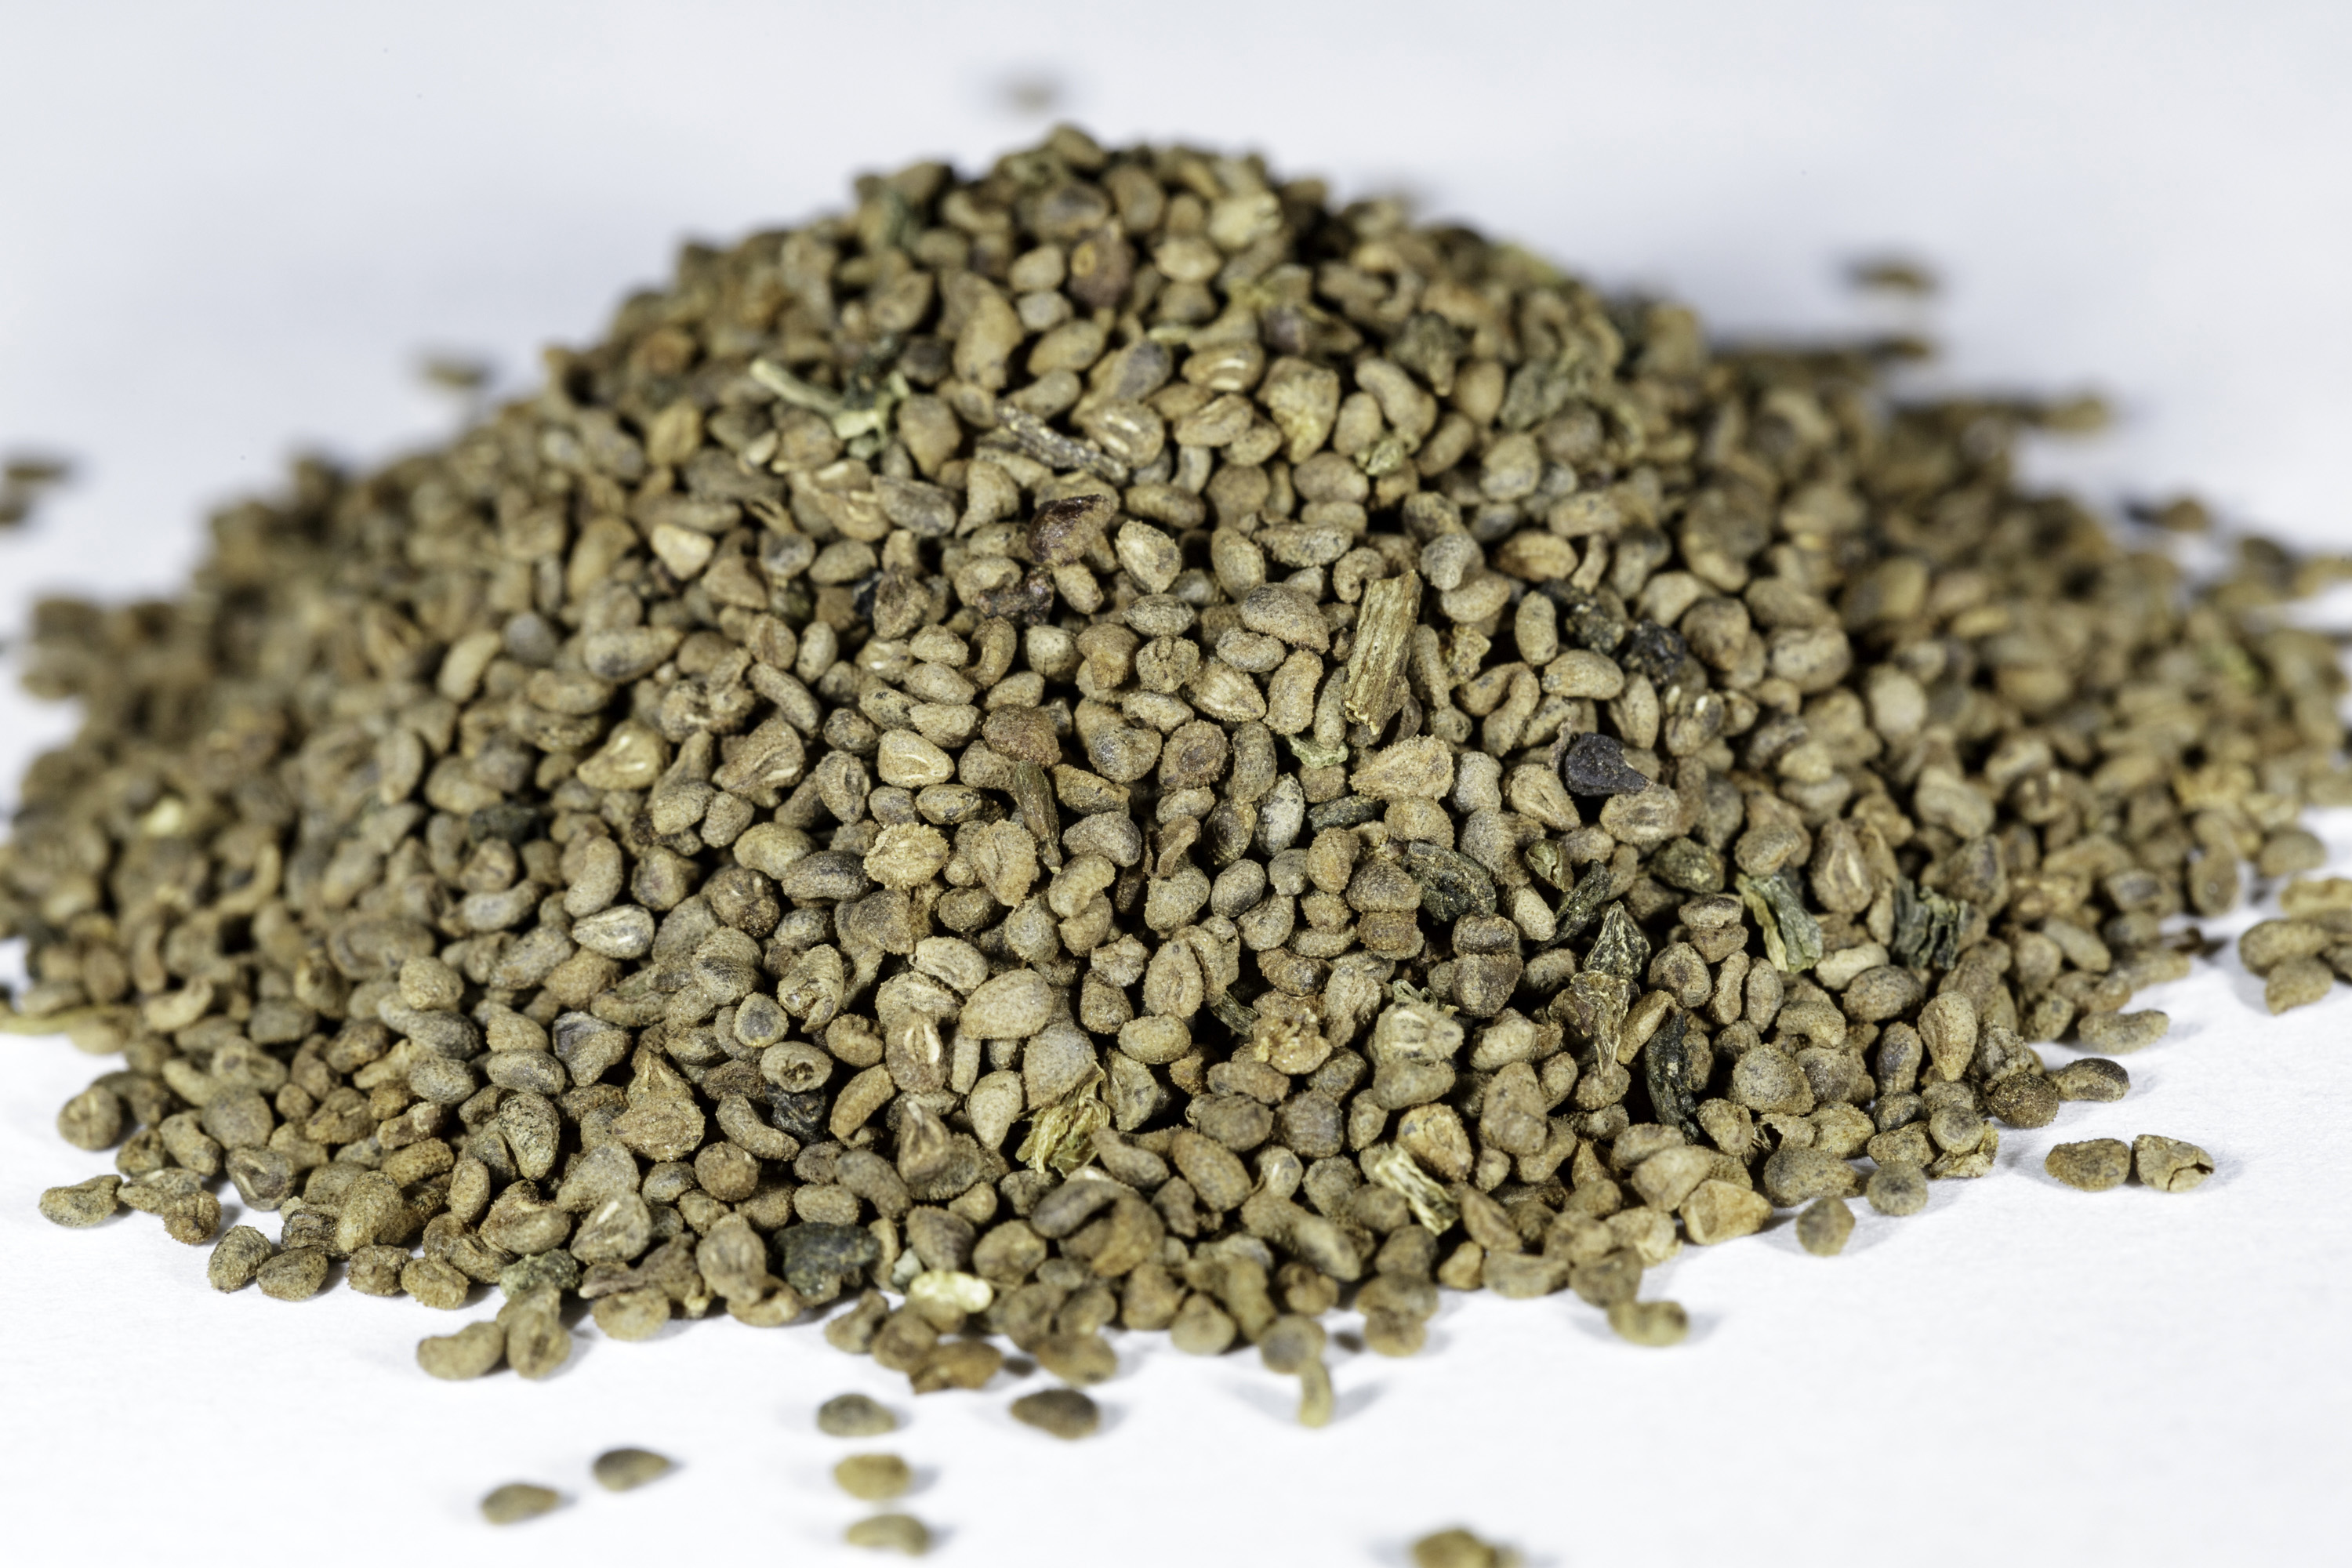 A front angle view of a small pile of Lopezia racemosa (Mosquito Flower) seeds.